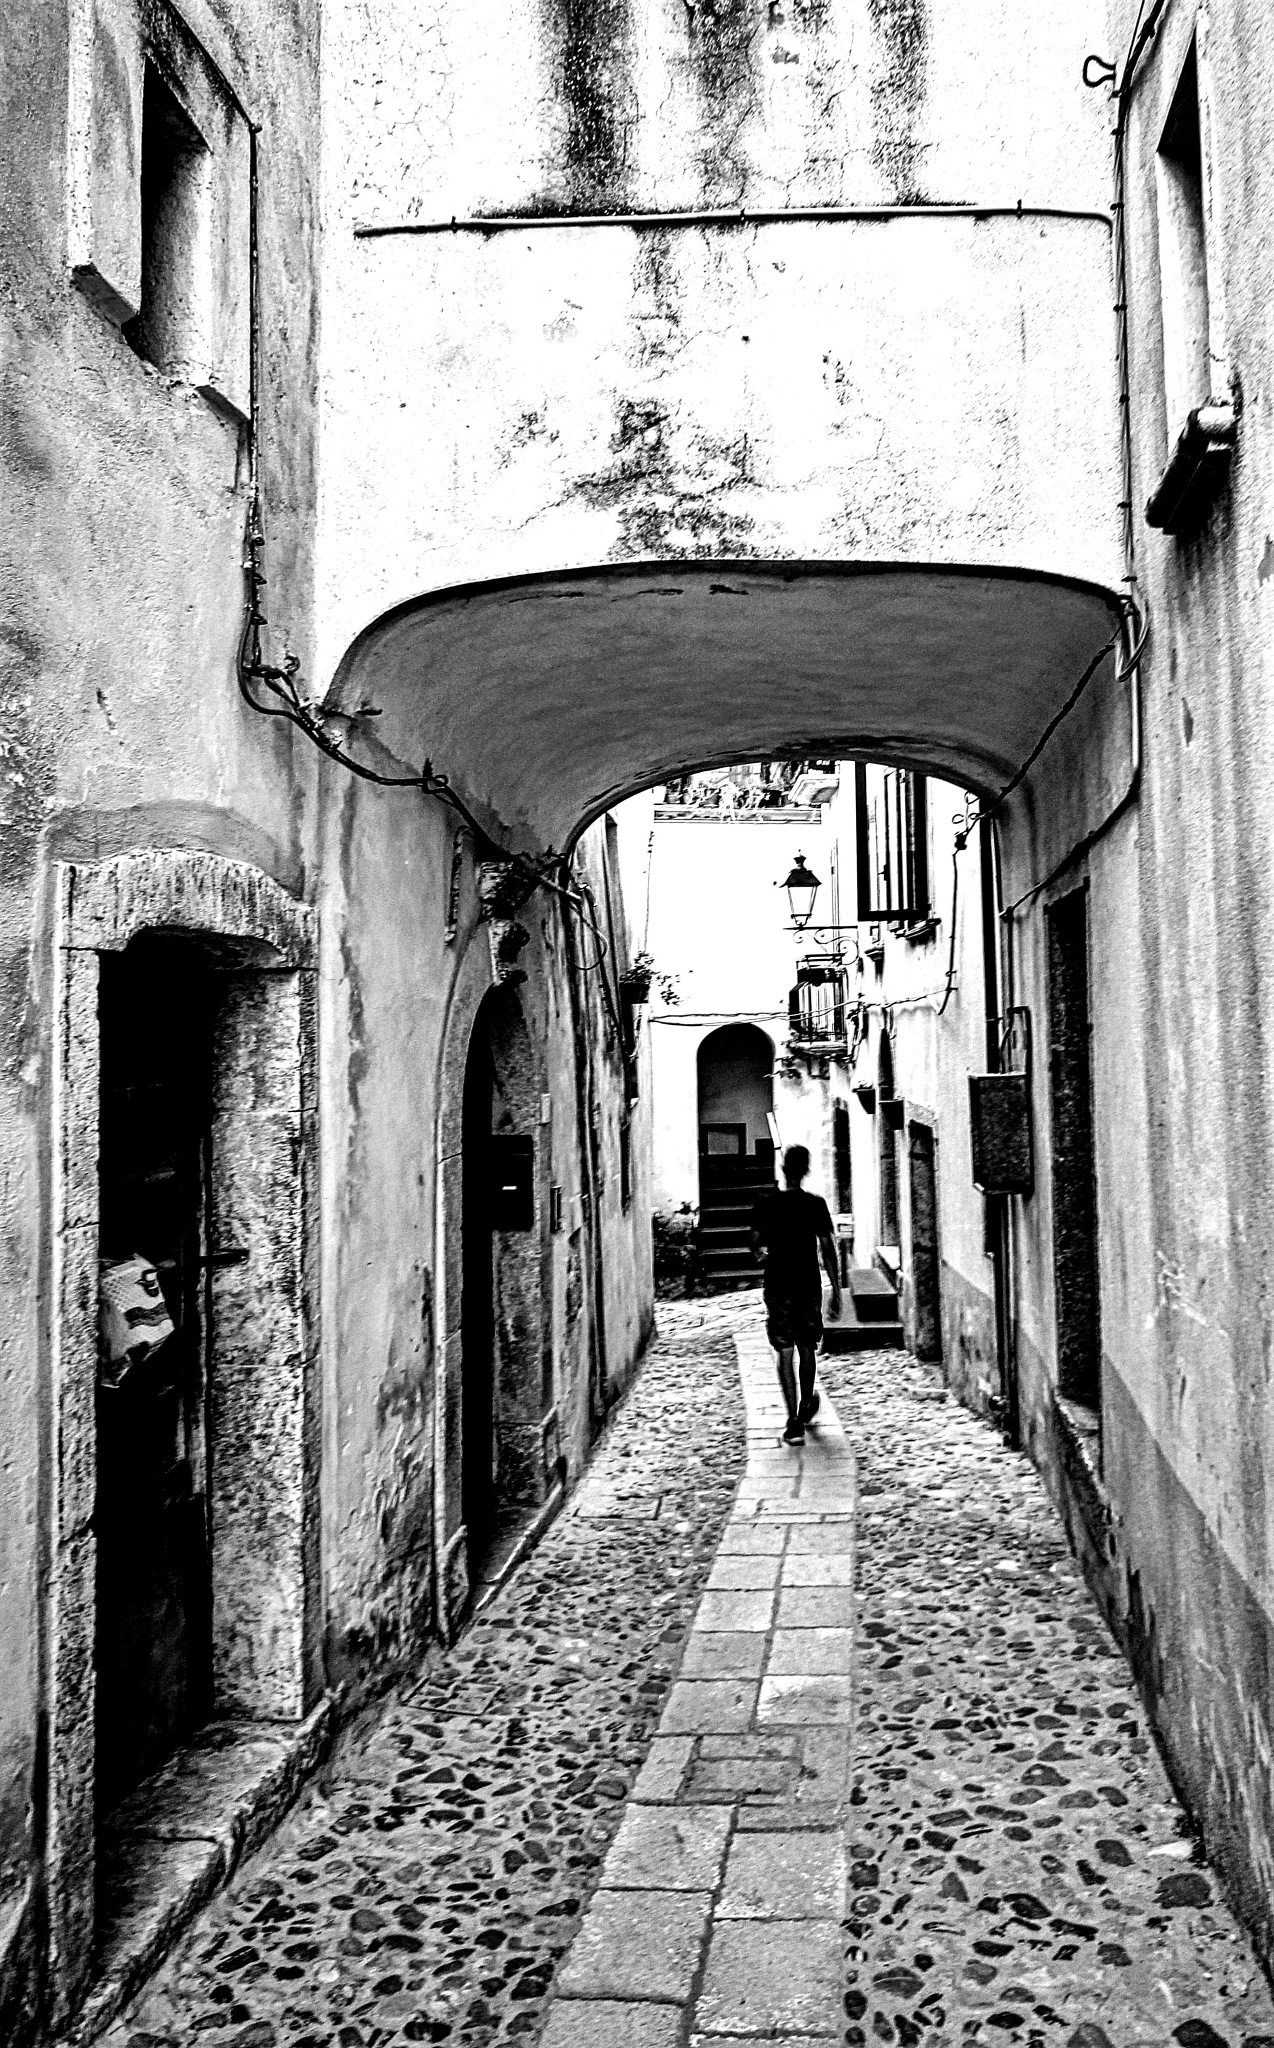 Looking for his own way. by Francesco Abate